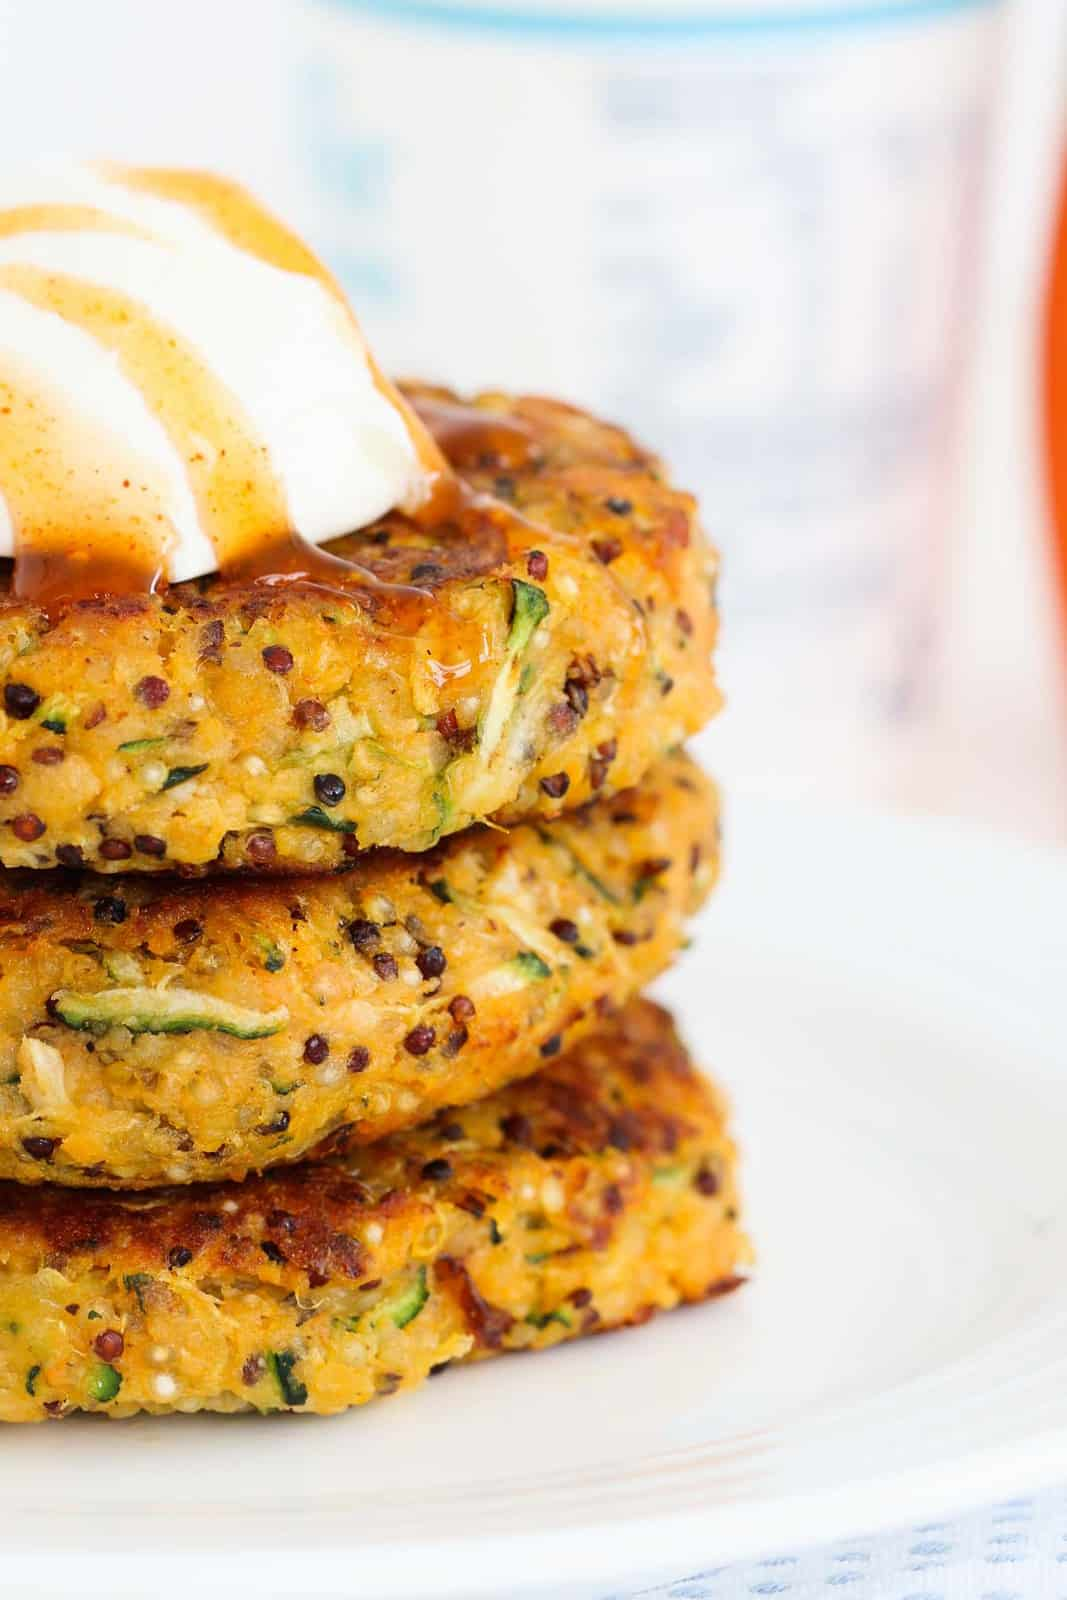 Three quinoa, zucchini and sweet potato fritters drizzled with sweet chilli sauce and sour cream.